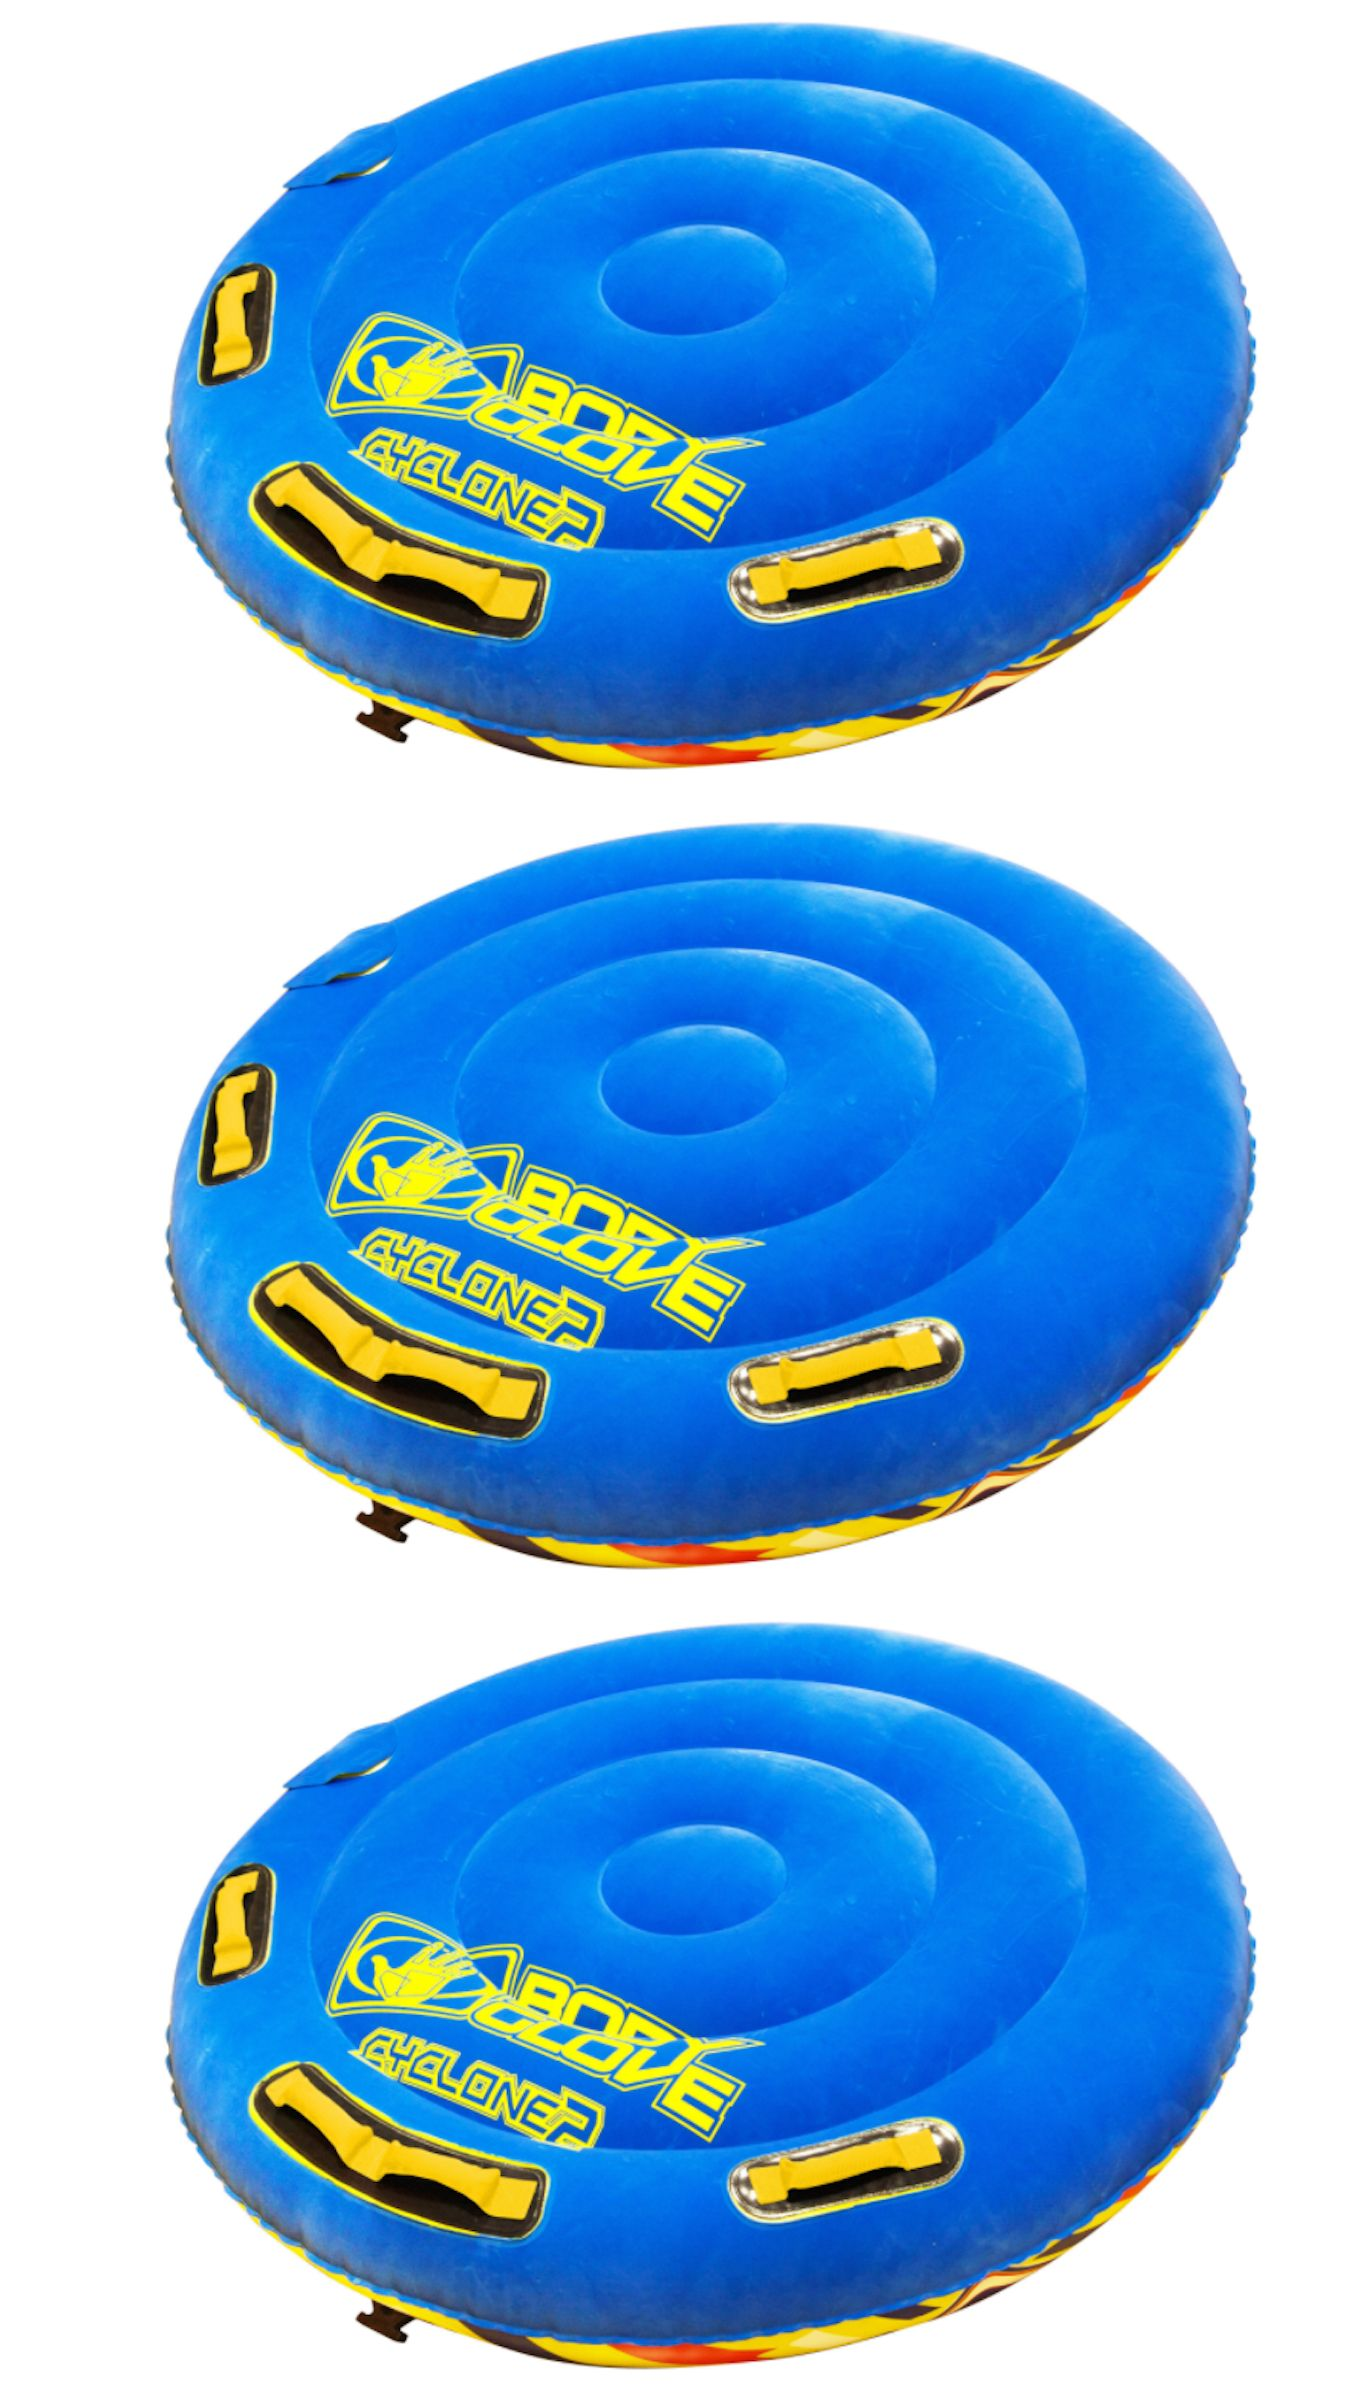 Tubing and Towables Water Toys For Lake Towable Tube Adults